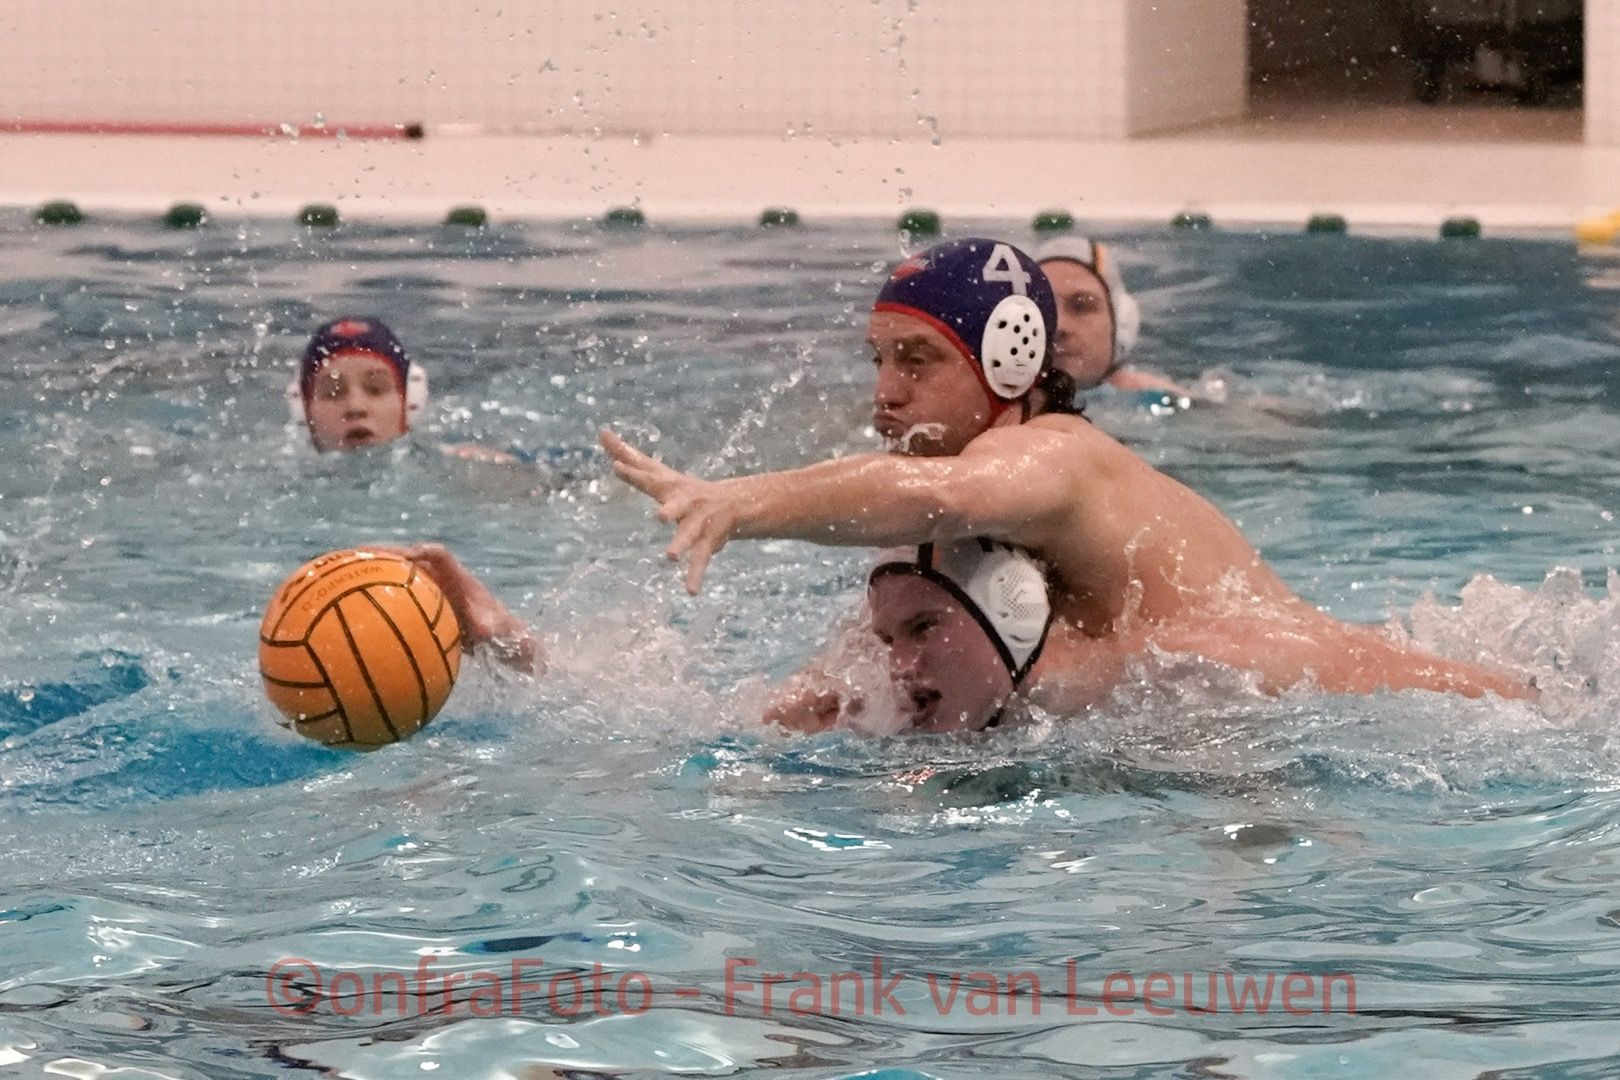 20180310 Waterpolo Den Haag 2 - De Zijl Zwemsport 3 heren FvL 7-web